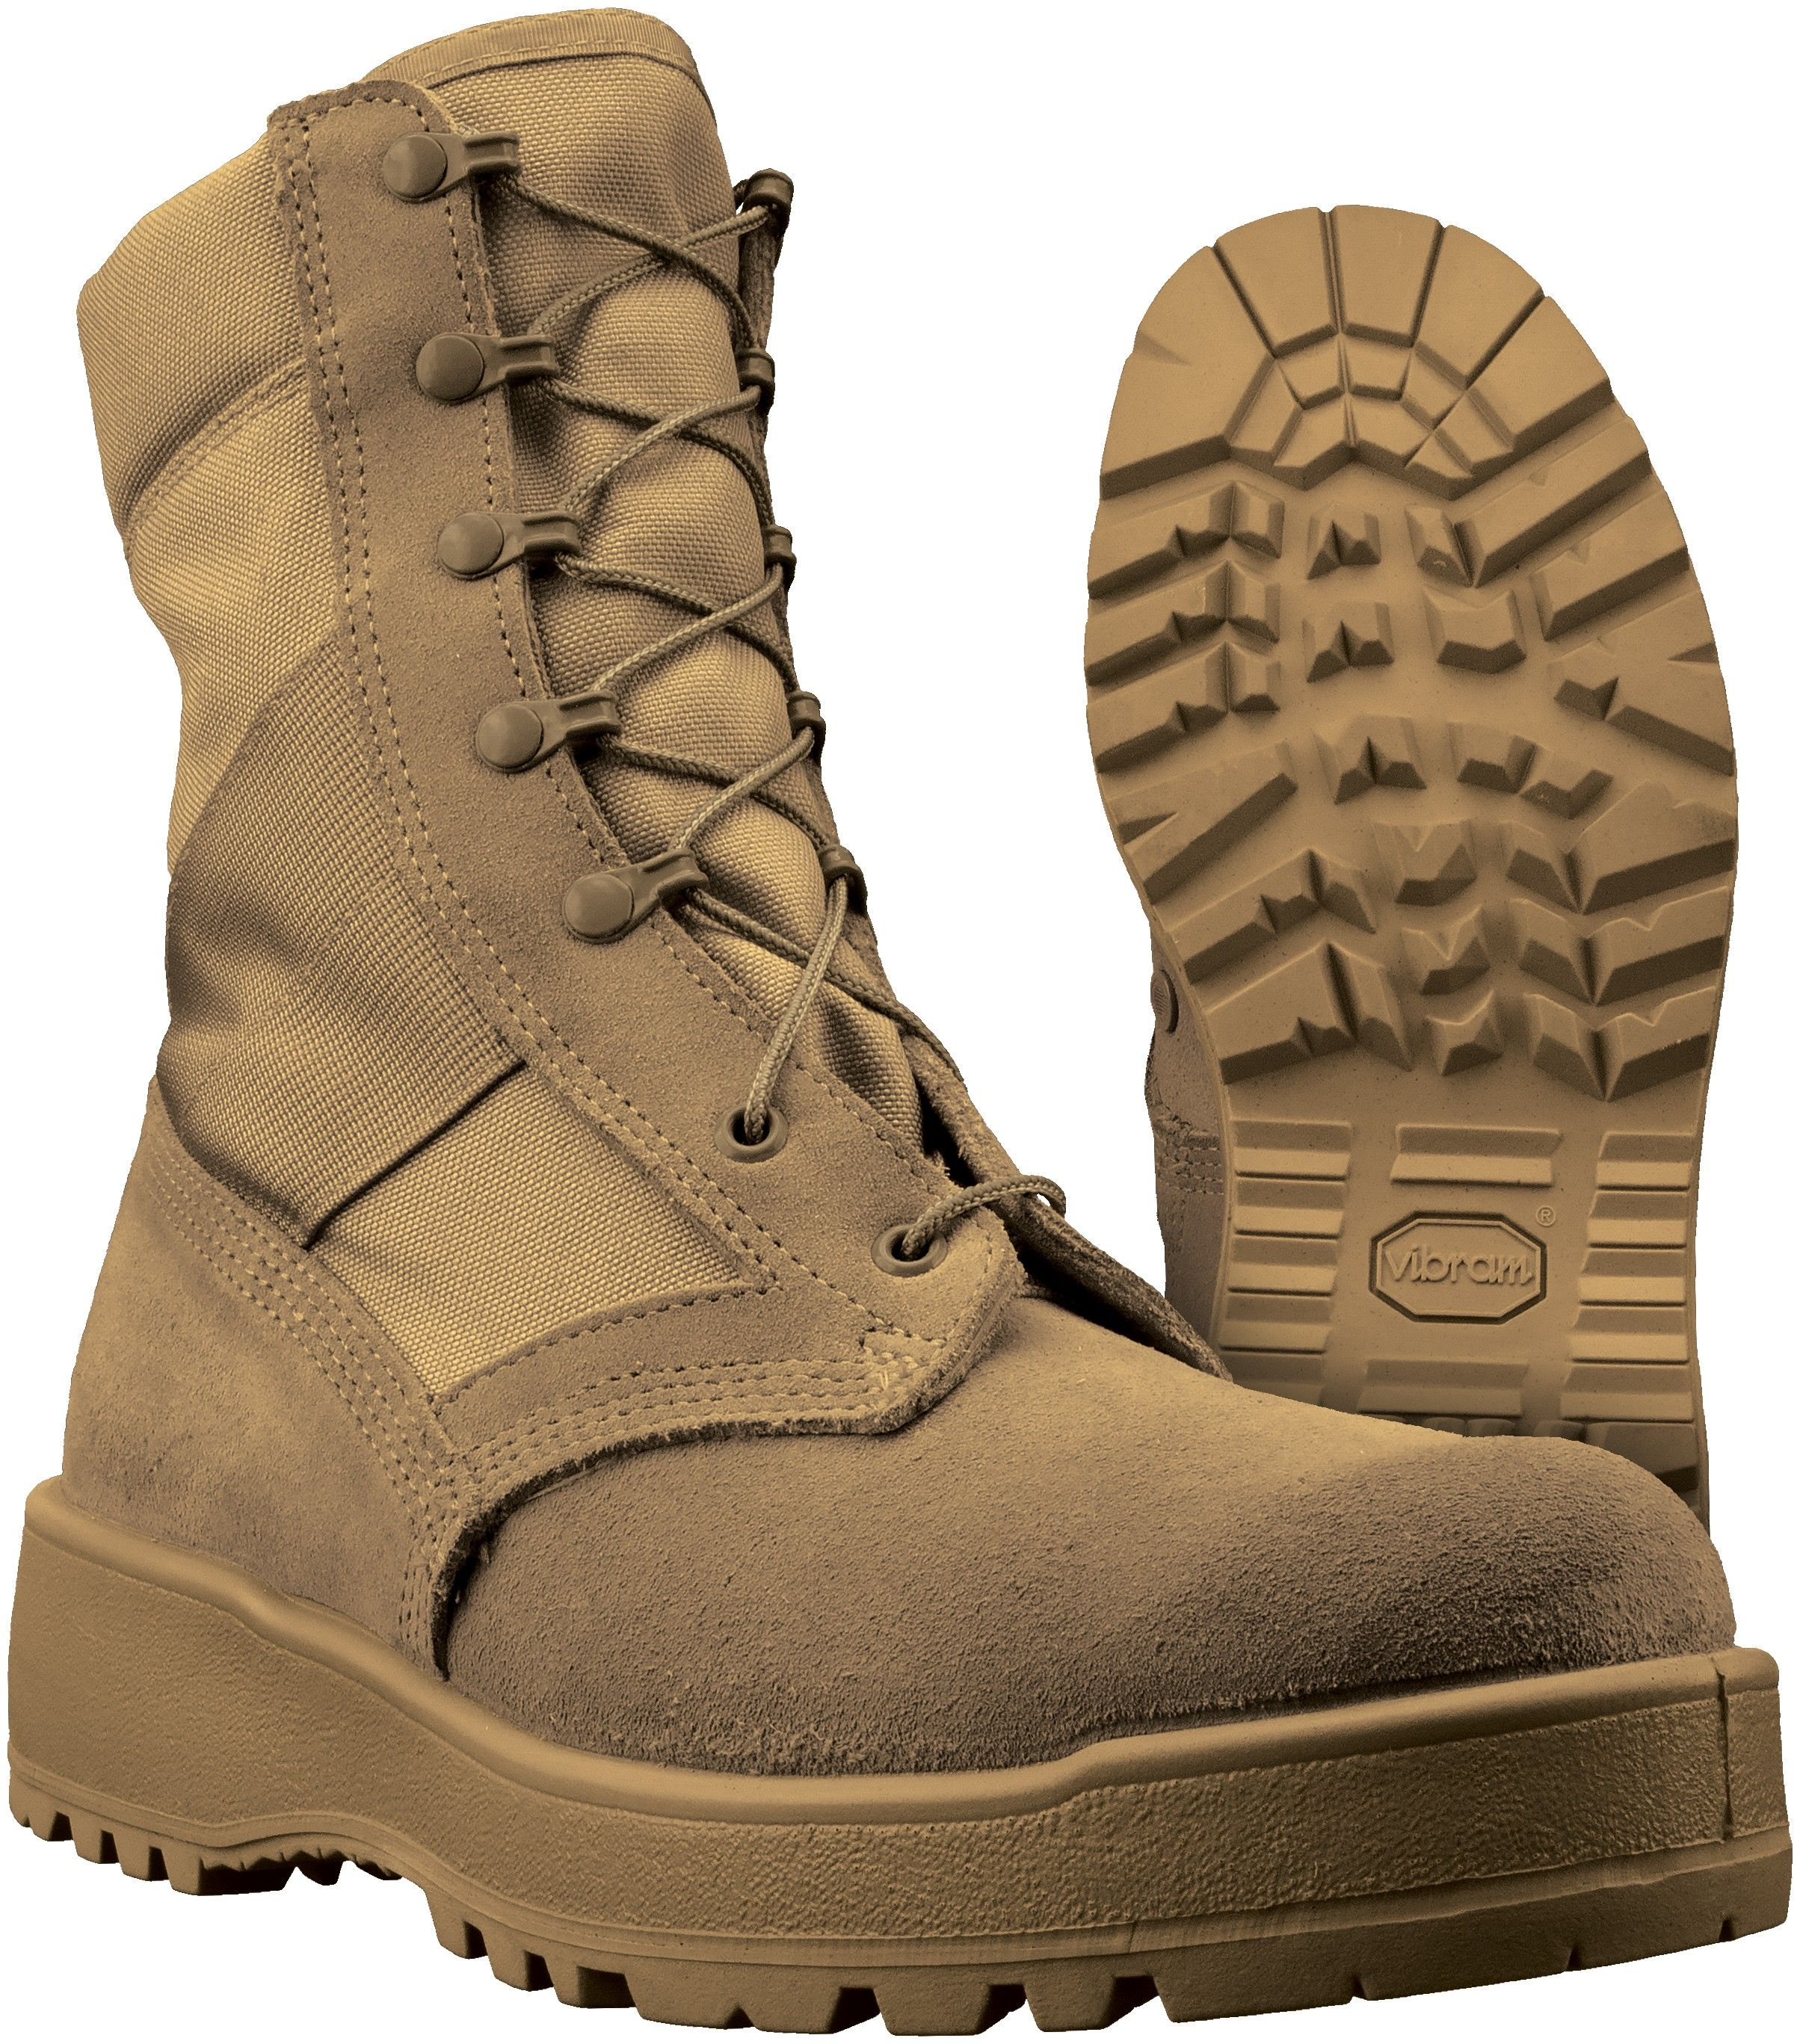 Mil Spec CP1 Hot Weather Boots from Altama  bafcbc4a44e